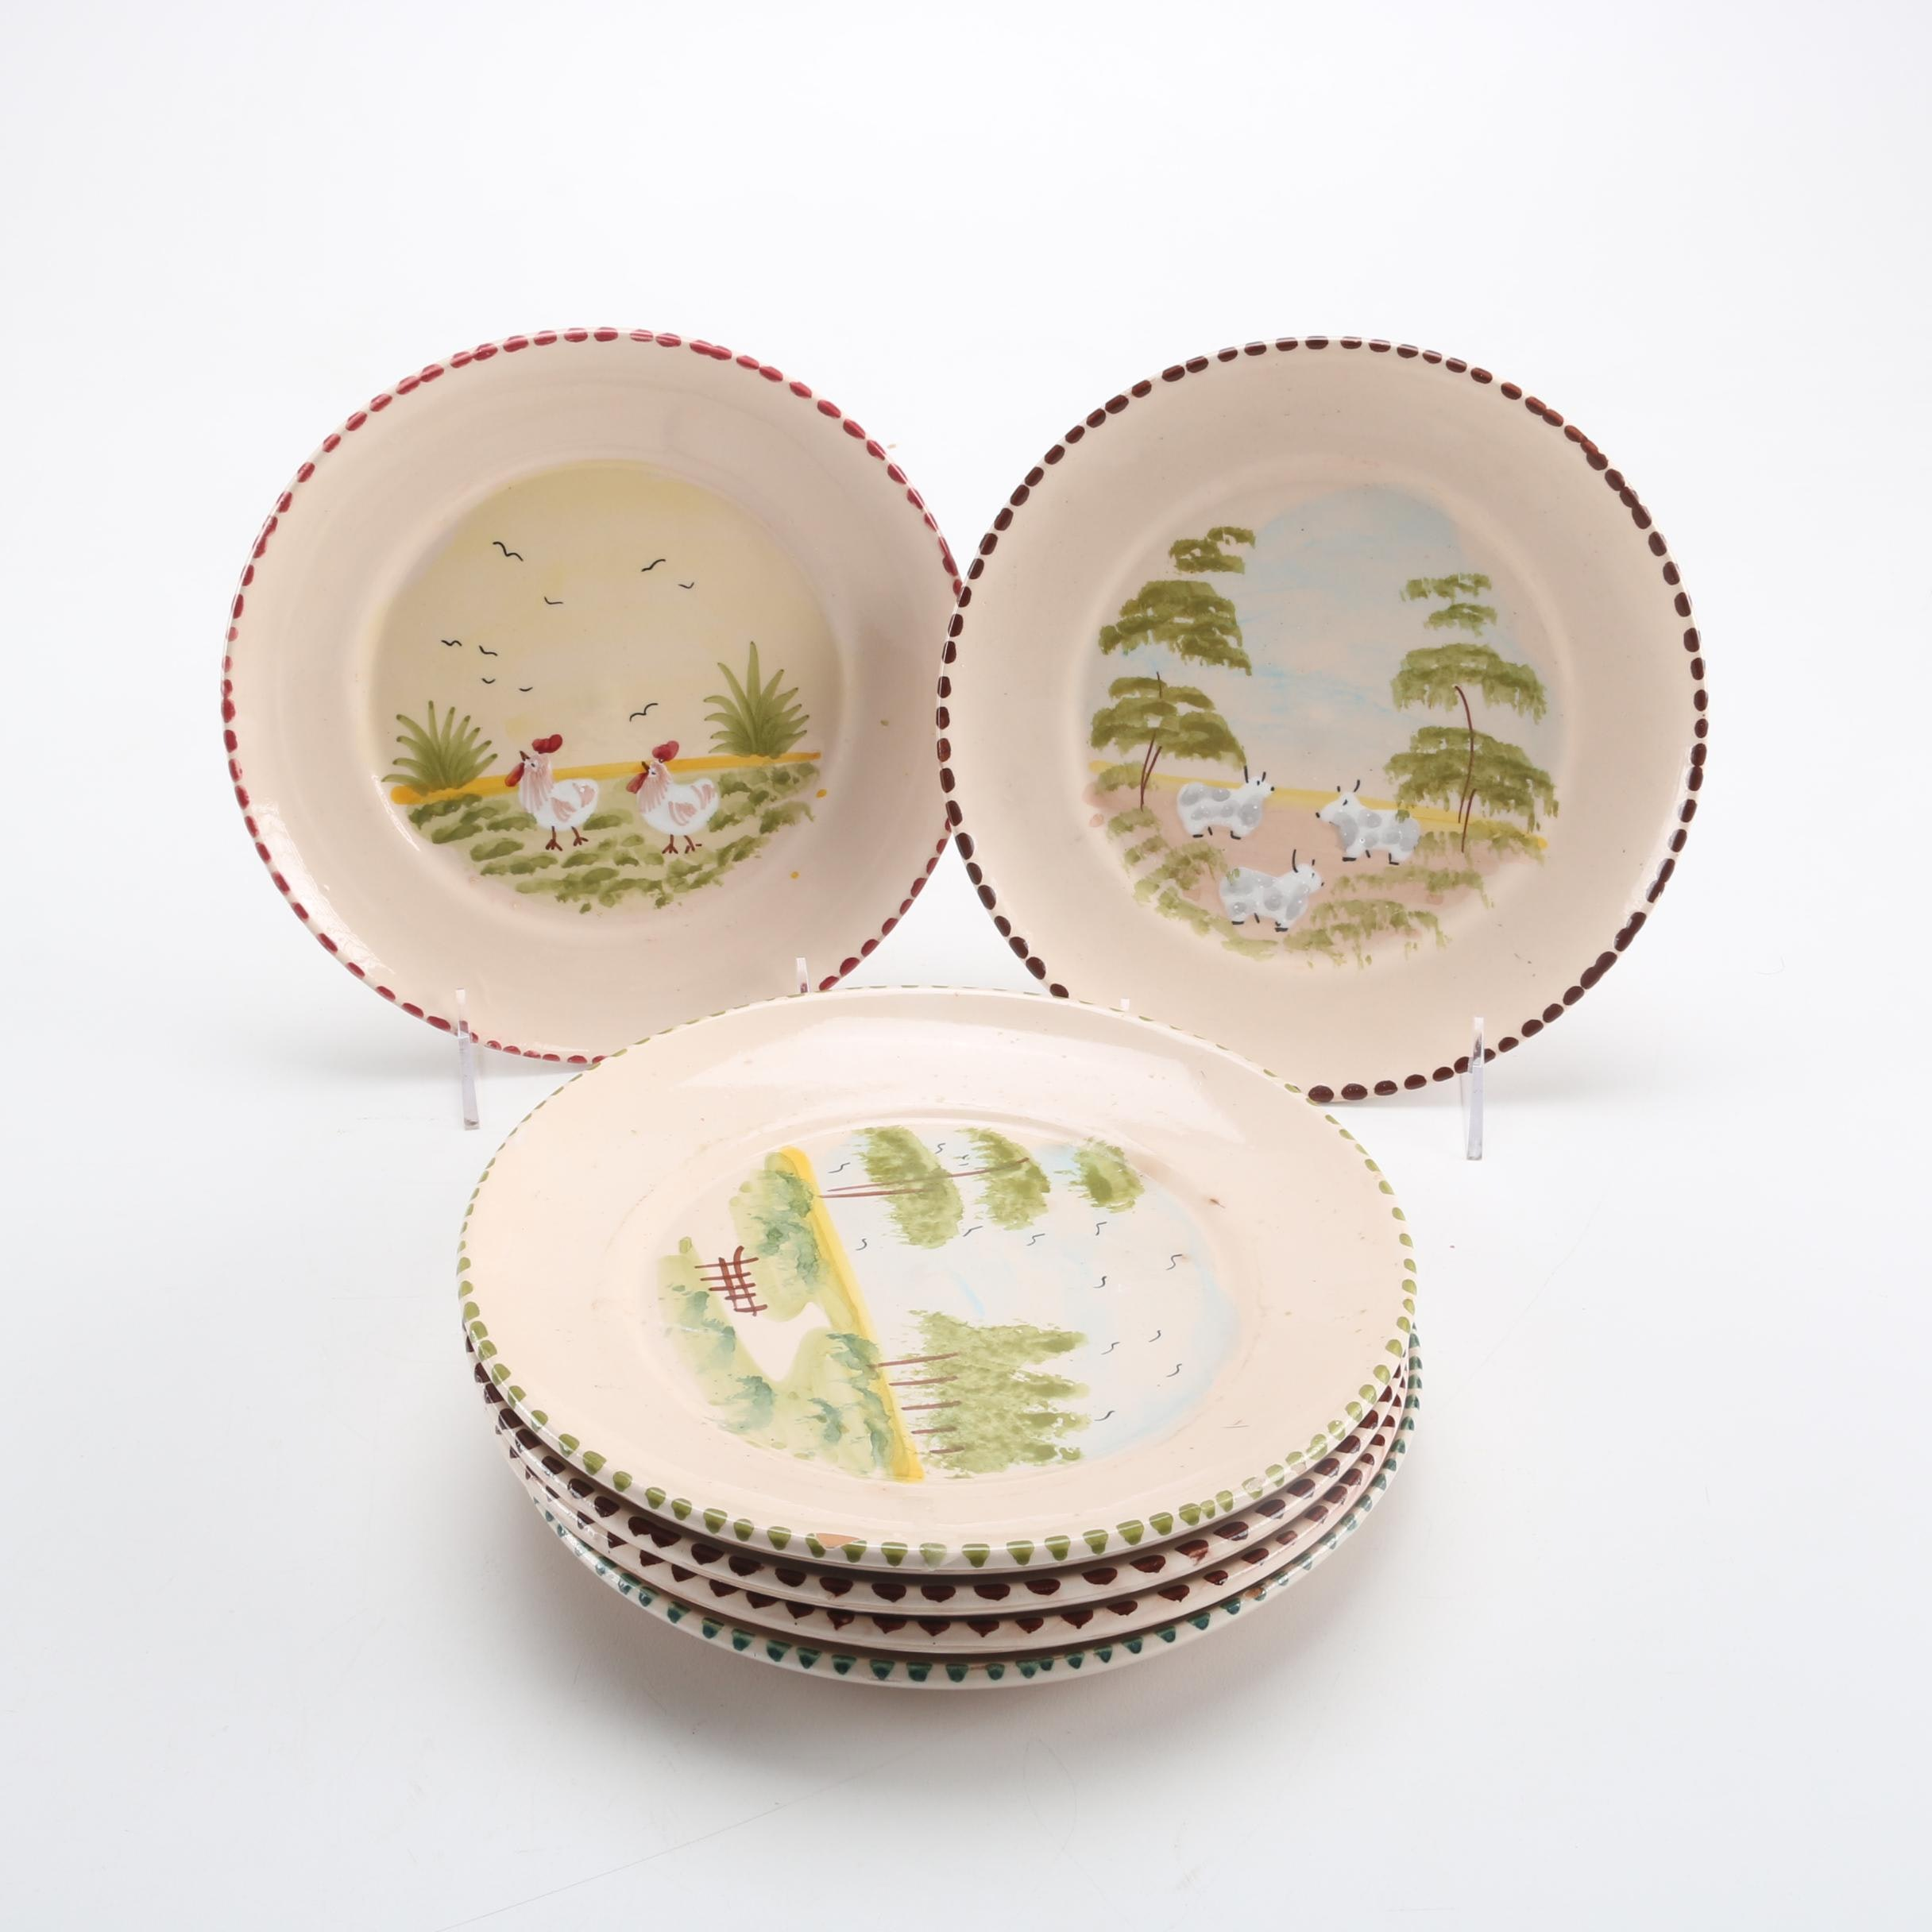 Selection of Hand-Painted Plates